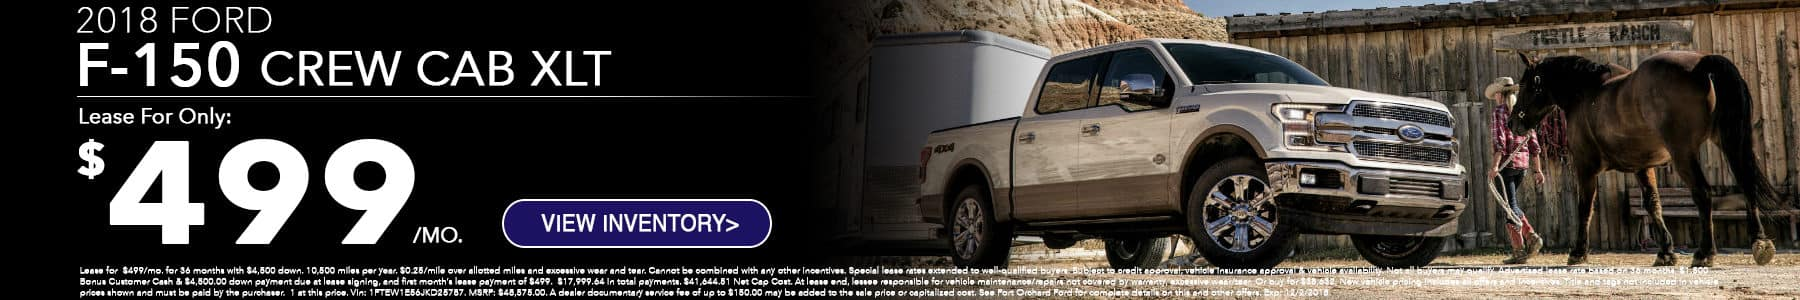 Ford F150 Special at Port Orchard Ford